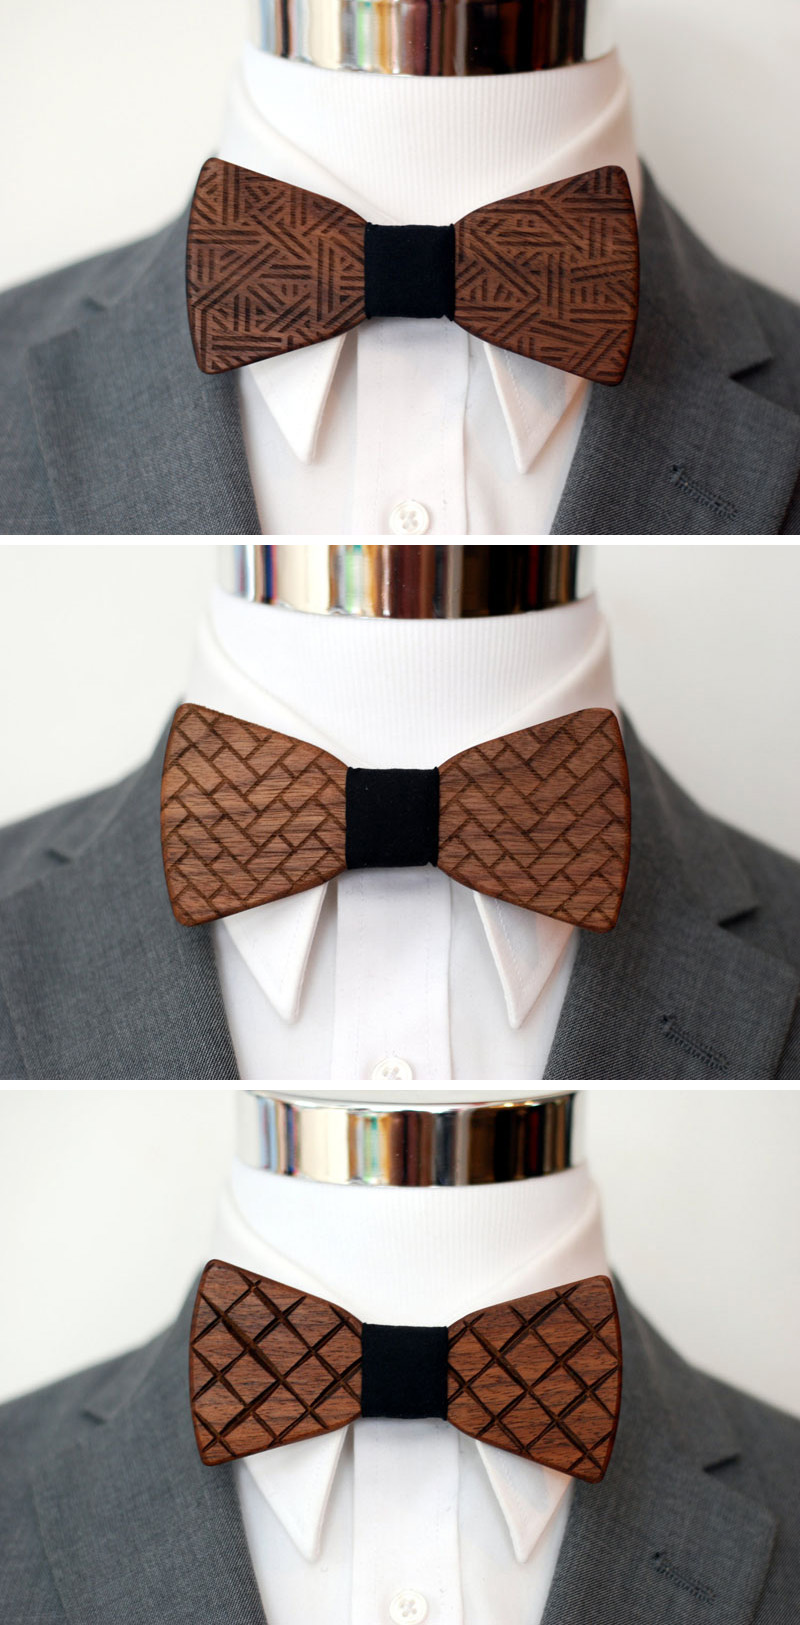 The various patterns burnt into the surface of these wood bow ties give them a unique look while remaining simple and contemporary for men's fashion.